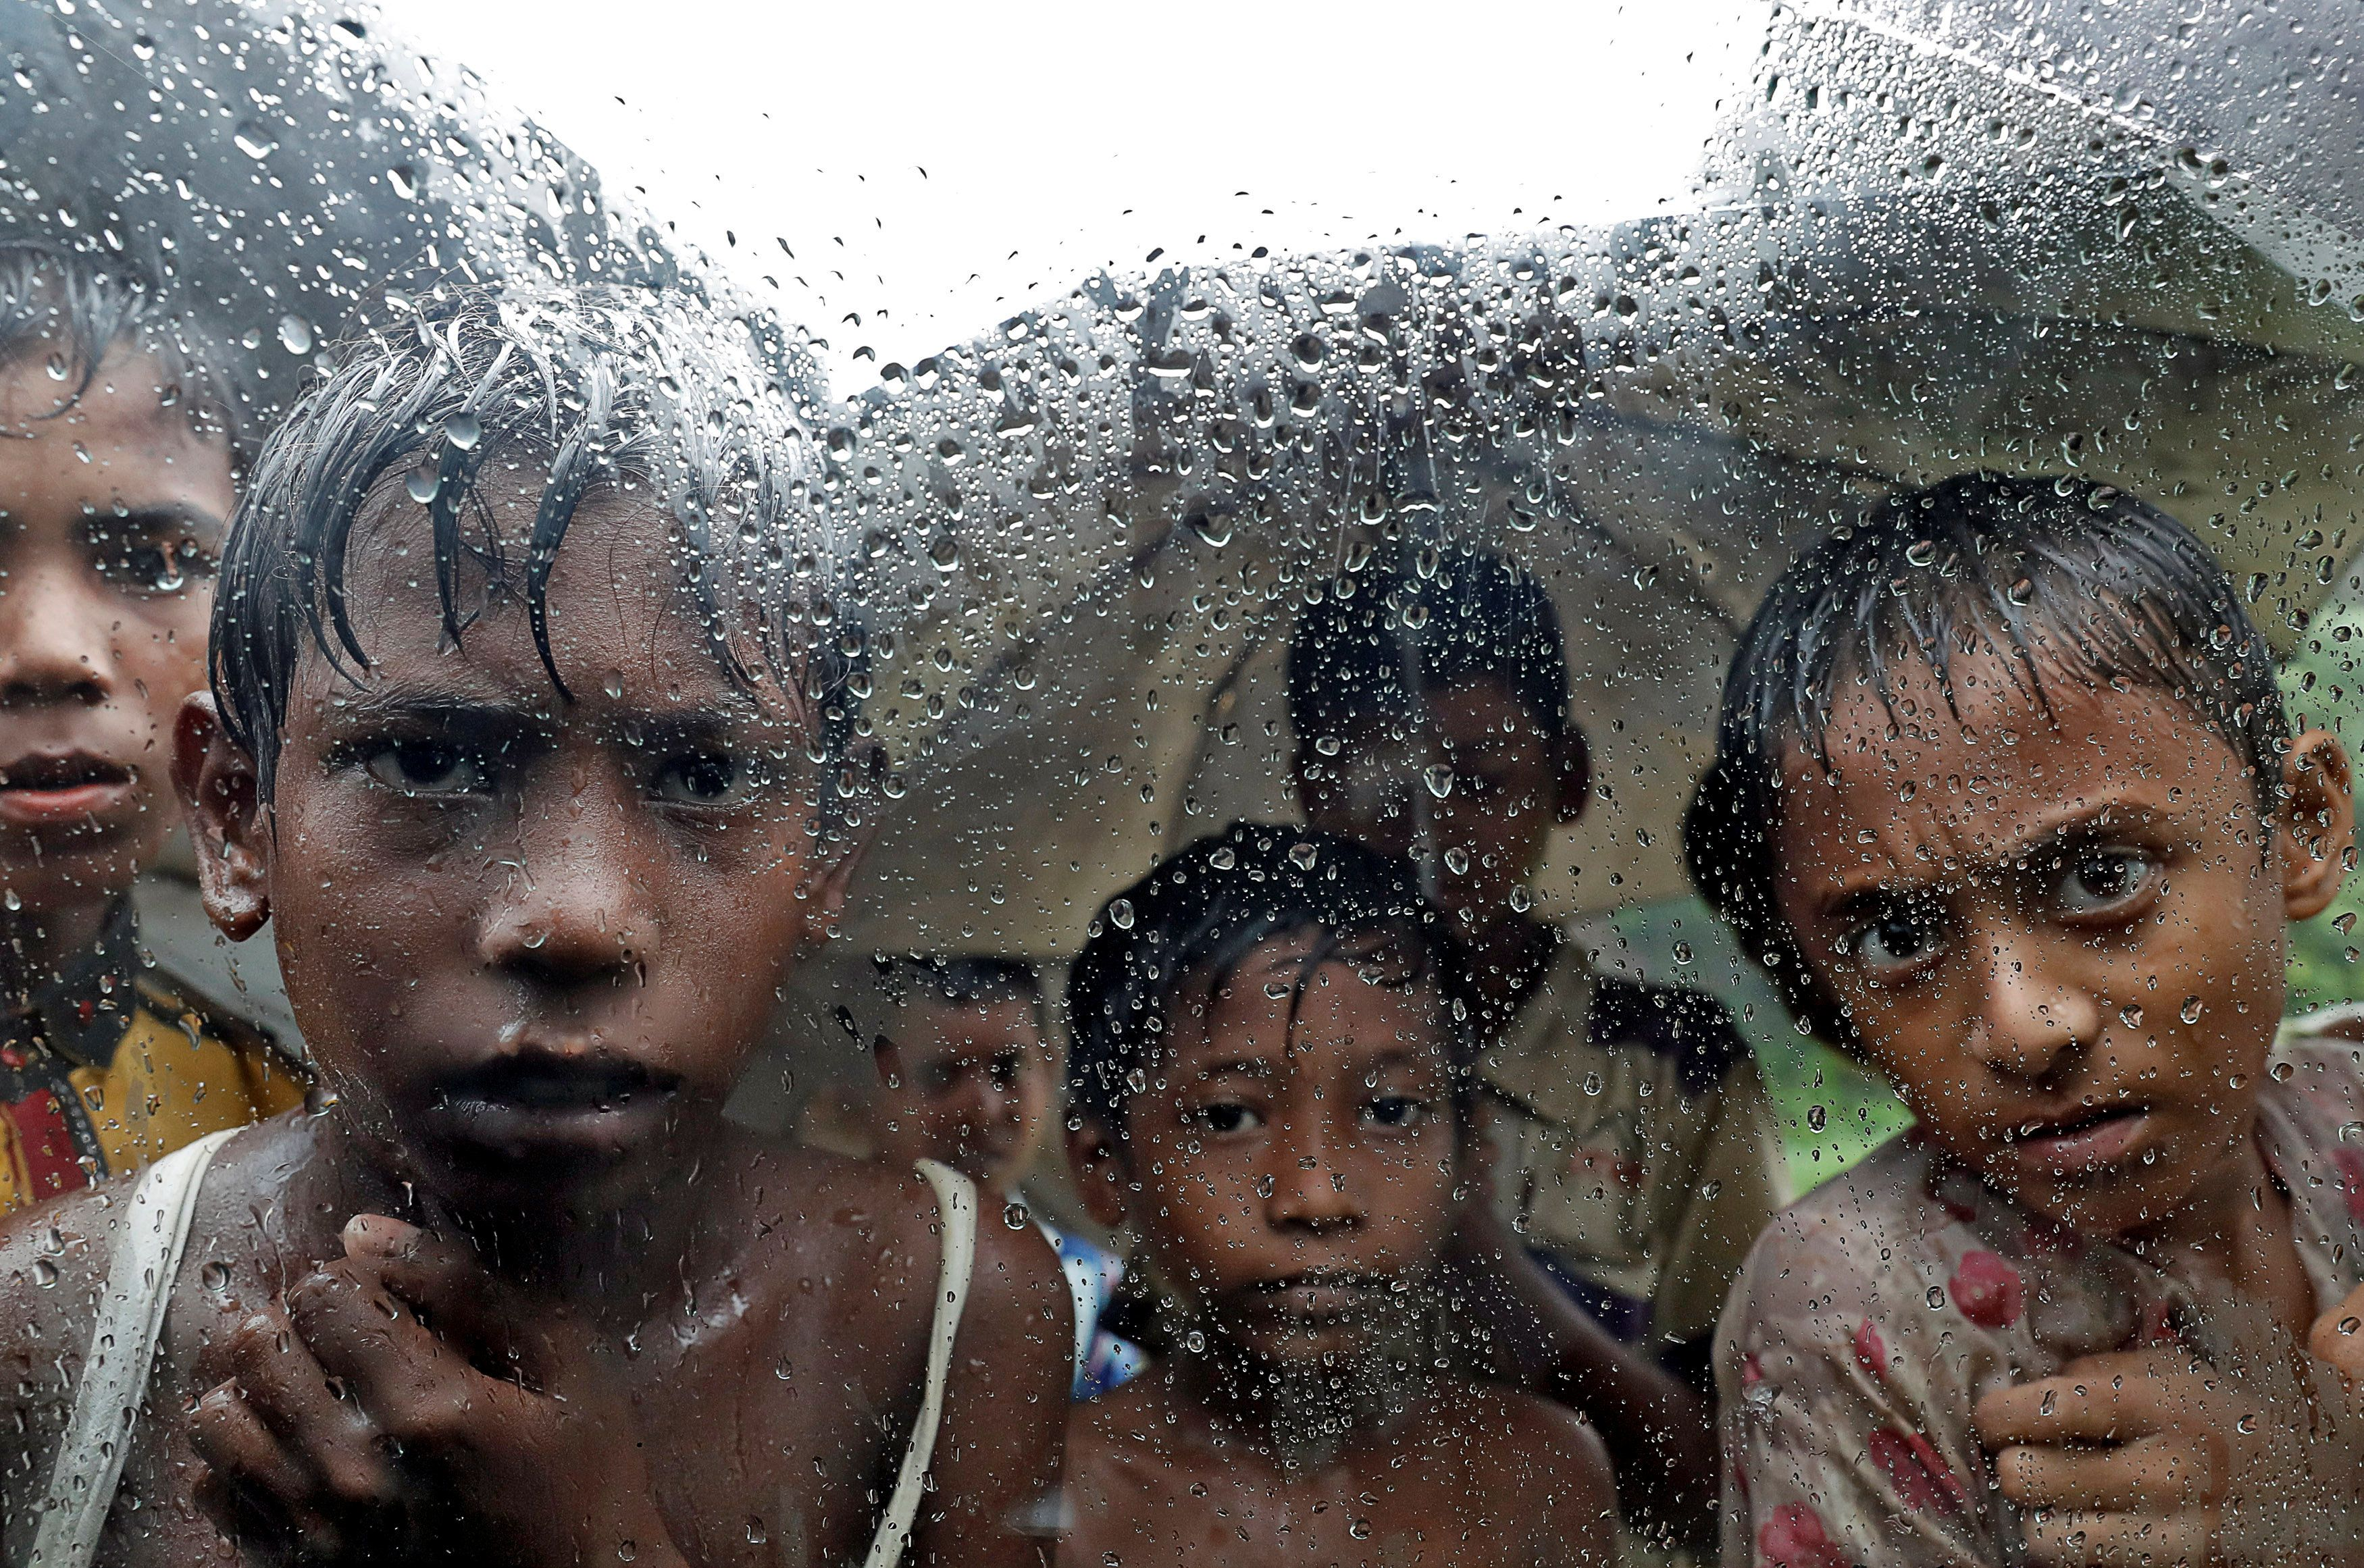 Rohingya refugee children pictured in a camp in Cox's Bazar, Bangladesh, September 19, 2017. REUTERS/Cathal McNaughton     TPX IMAGES OF THE DAY